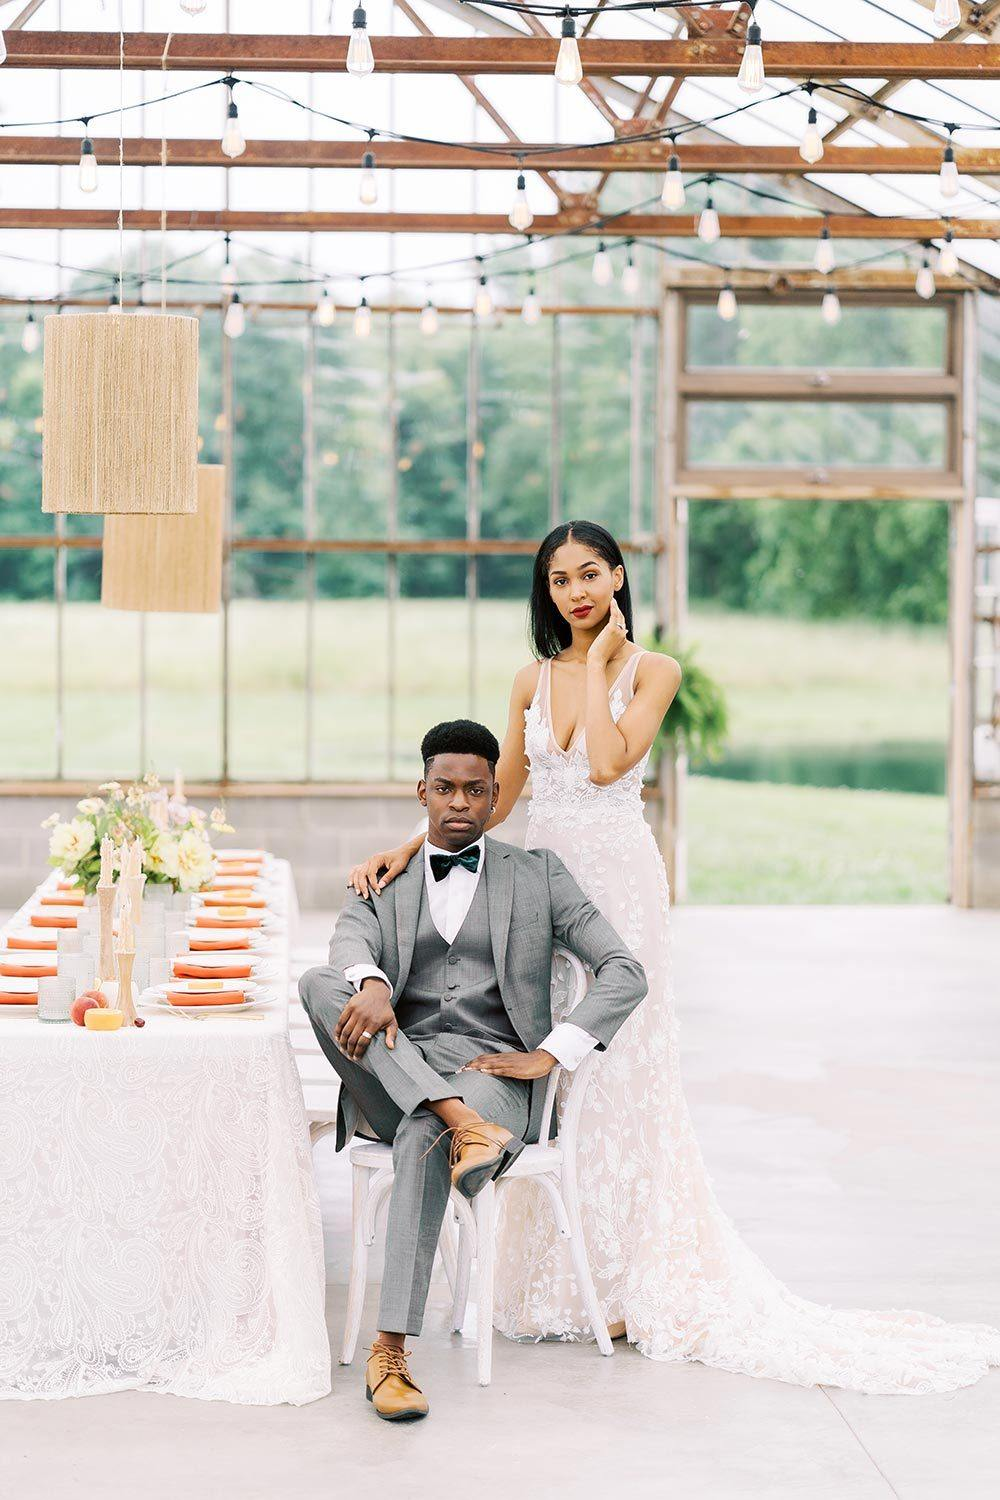 floral applique wedding dress with gray groom suit and glass house wedding reception with boho pendants